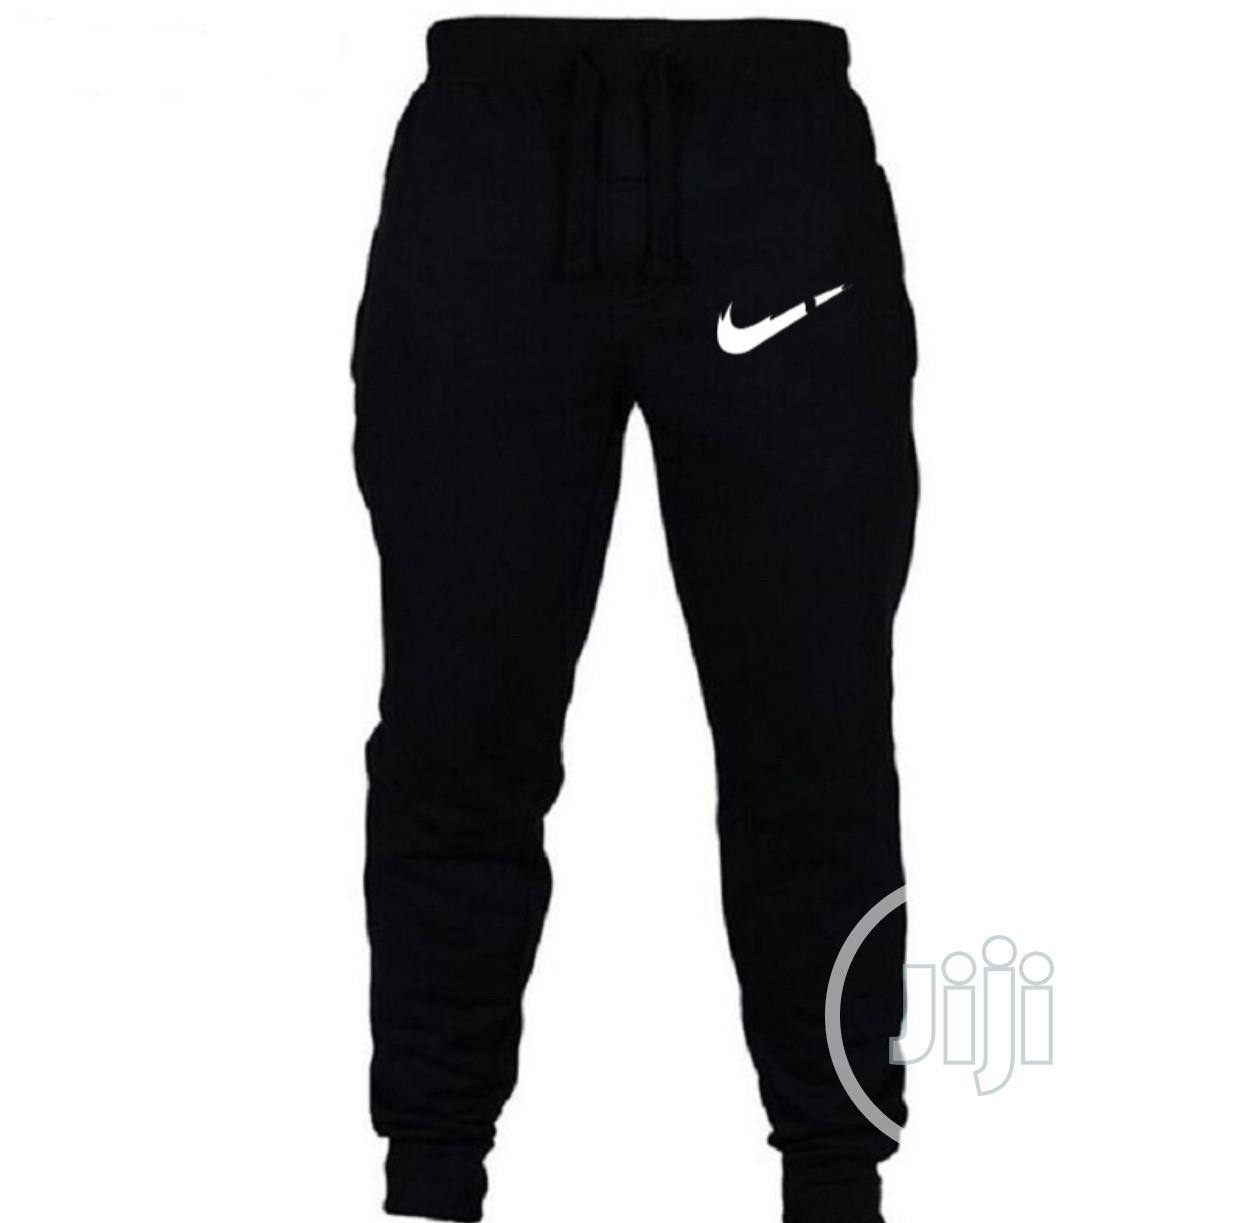 Joggers Trousers With Nike Logo | Clothing for sale in Egbeda, Oyo State, Nigeria